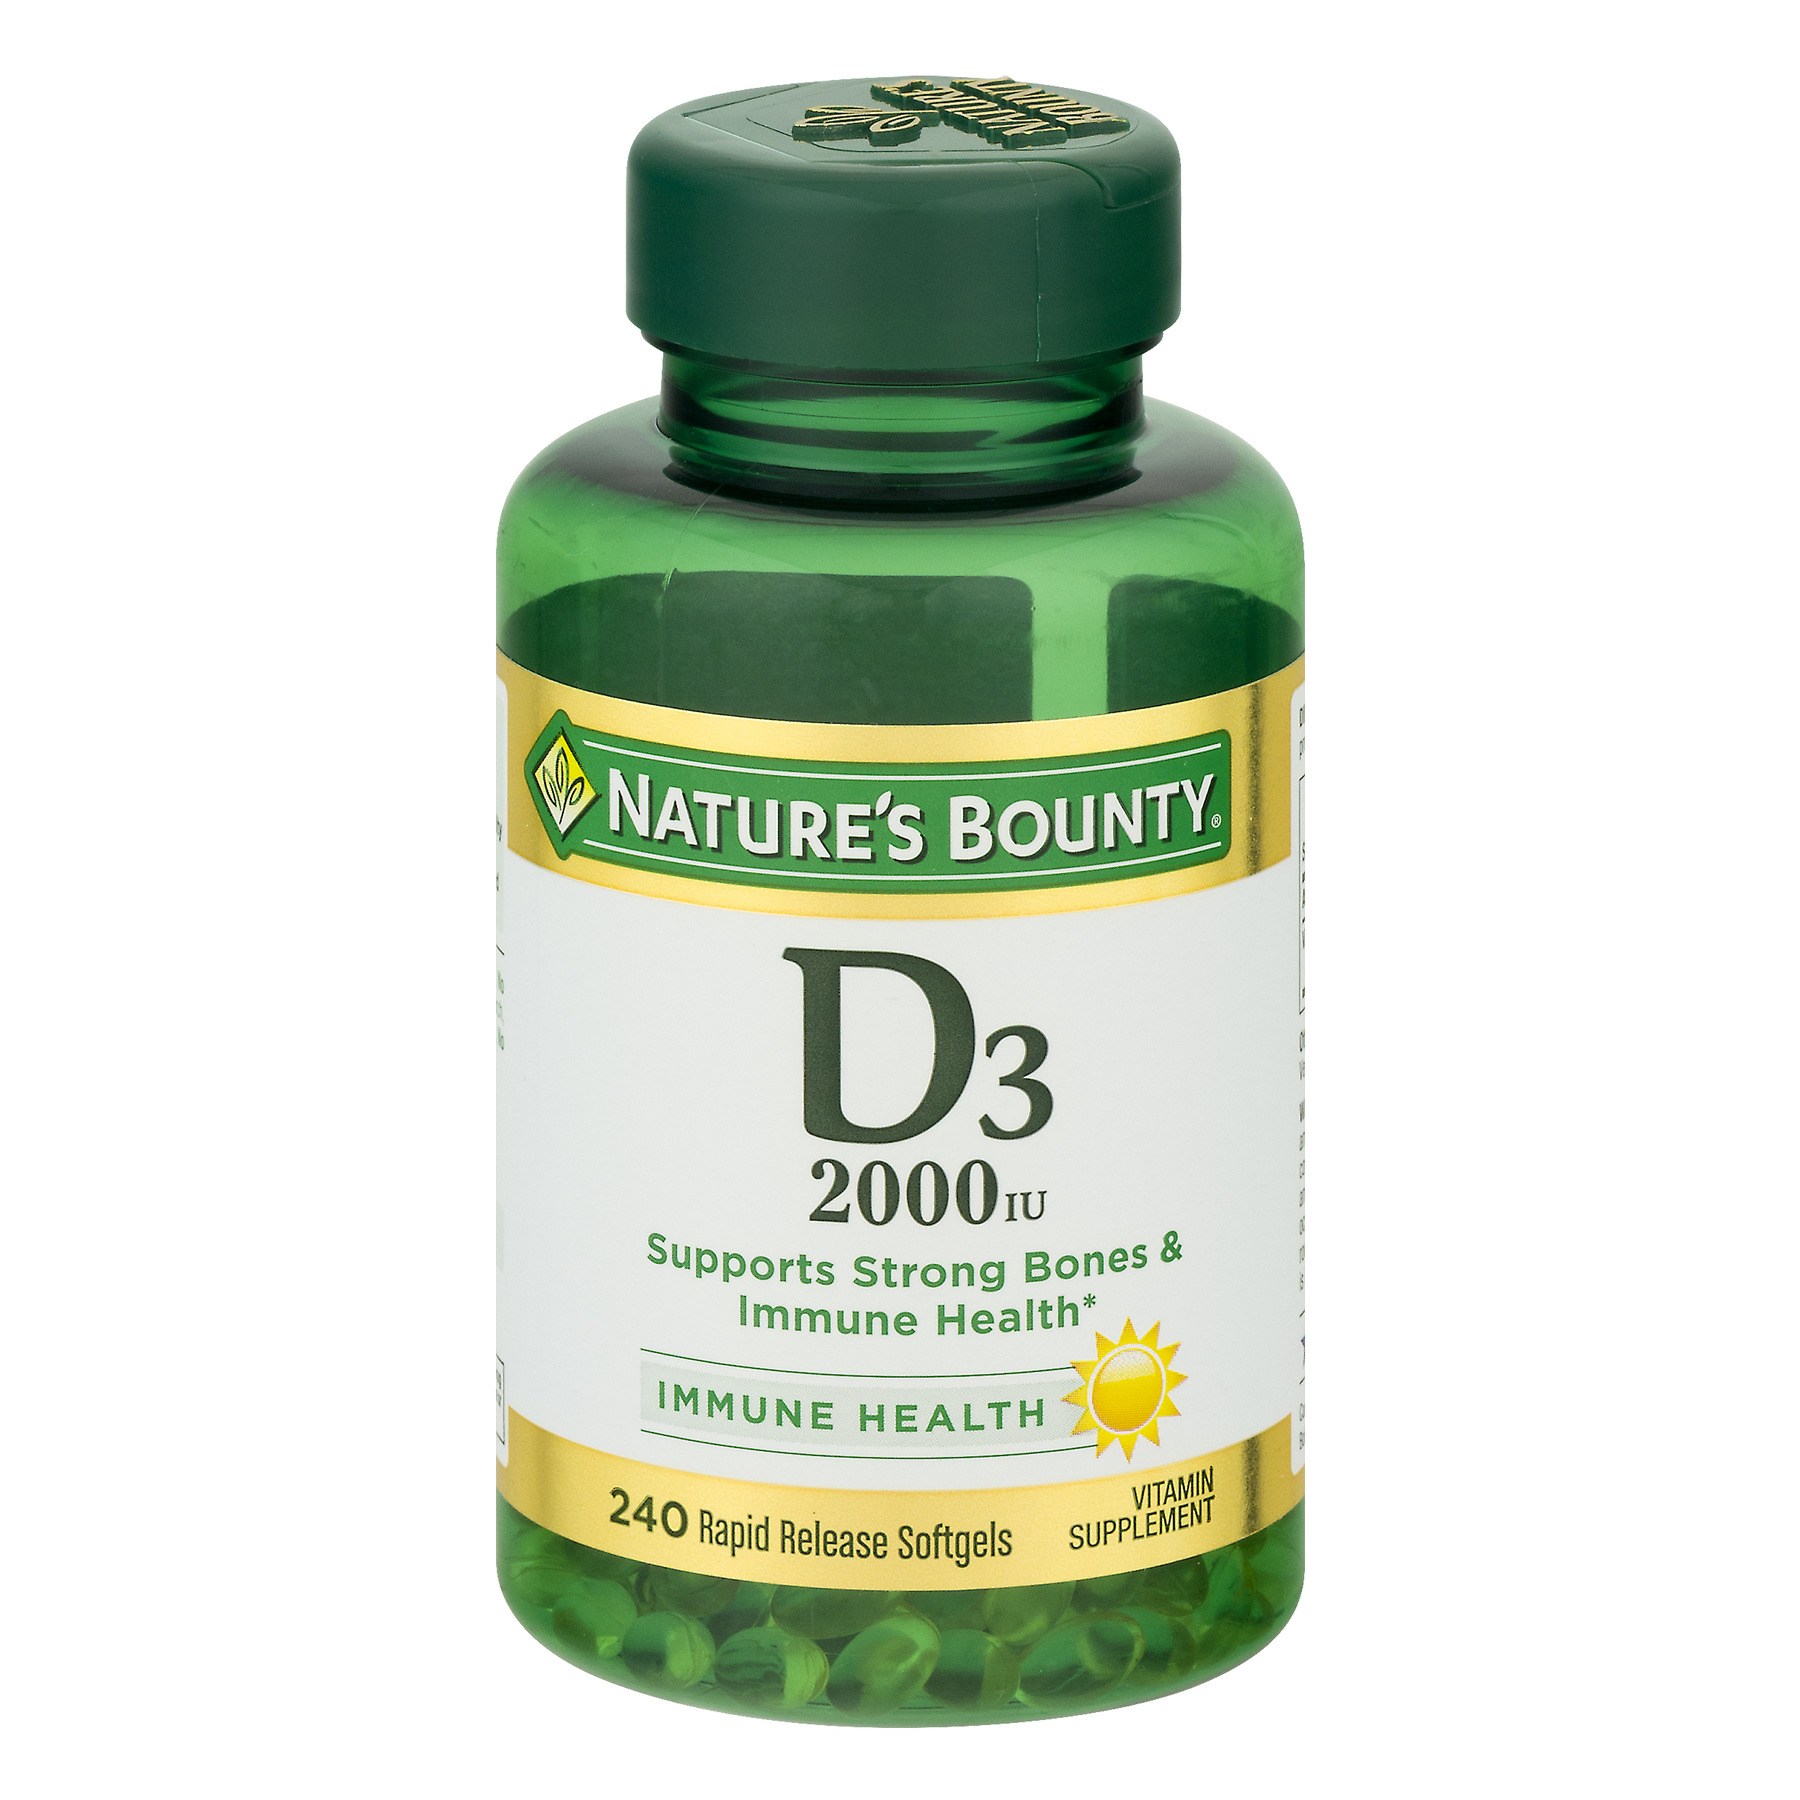 Nature's Bounty D3, 2000 IU Rapid Release Softgels, 240ct